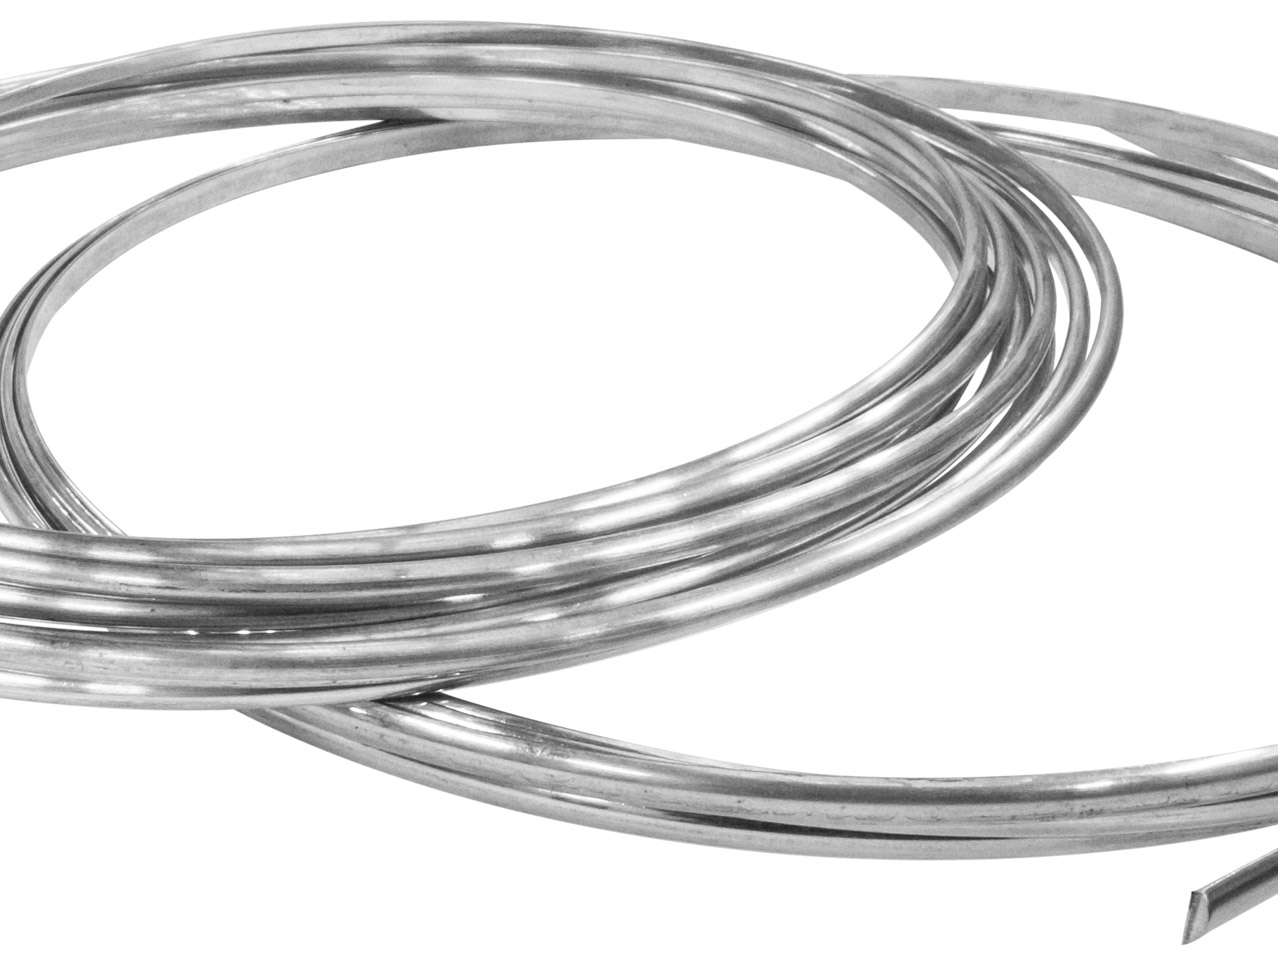 Fil demi jonc, 3,00 x 1,50 mm, Or 18k gris BN, recuit